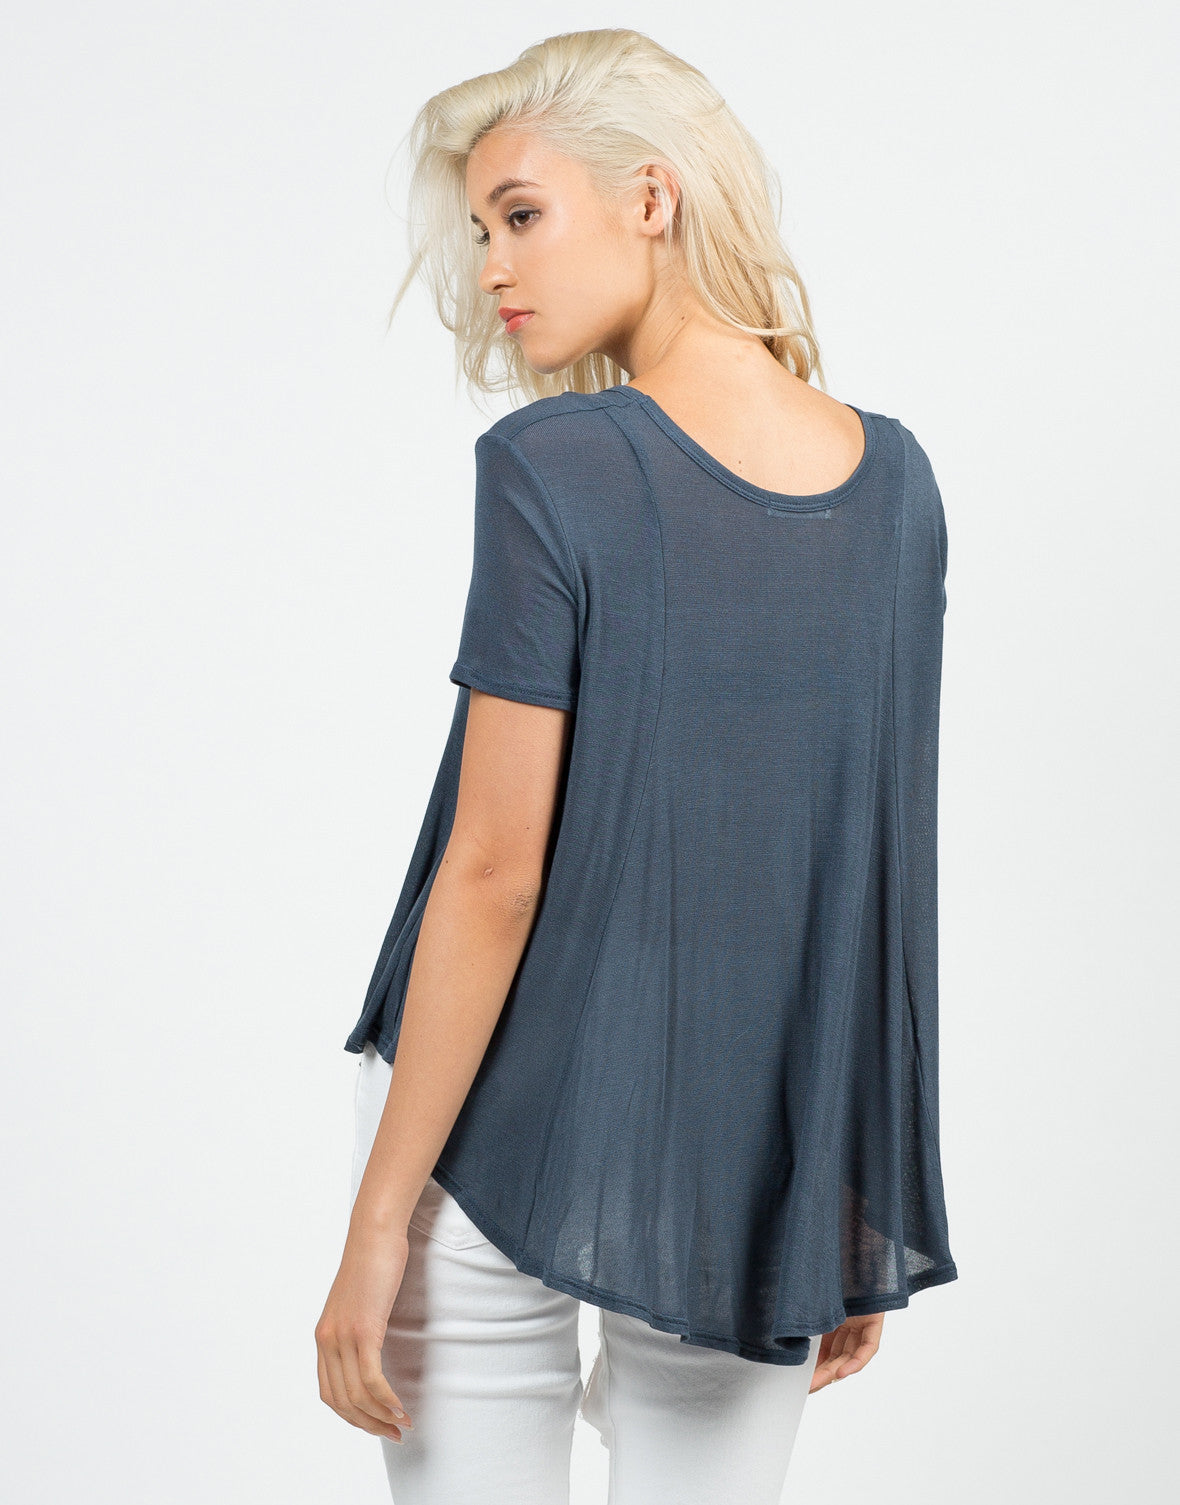 Back View of Flowy Sheer Knit Top